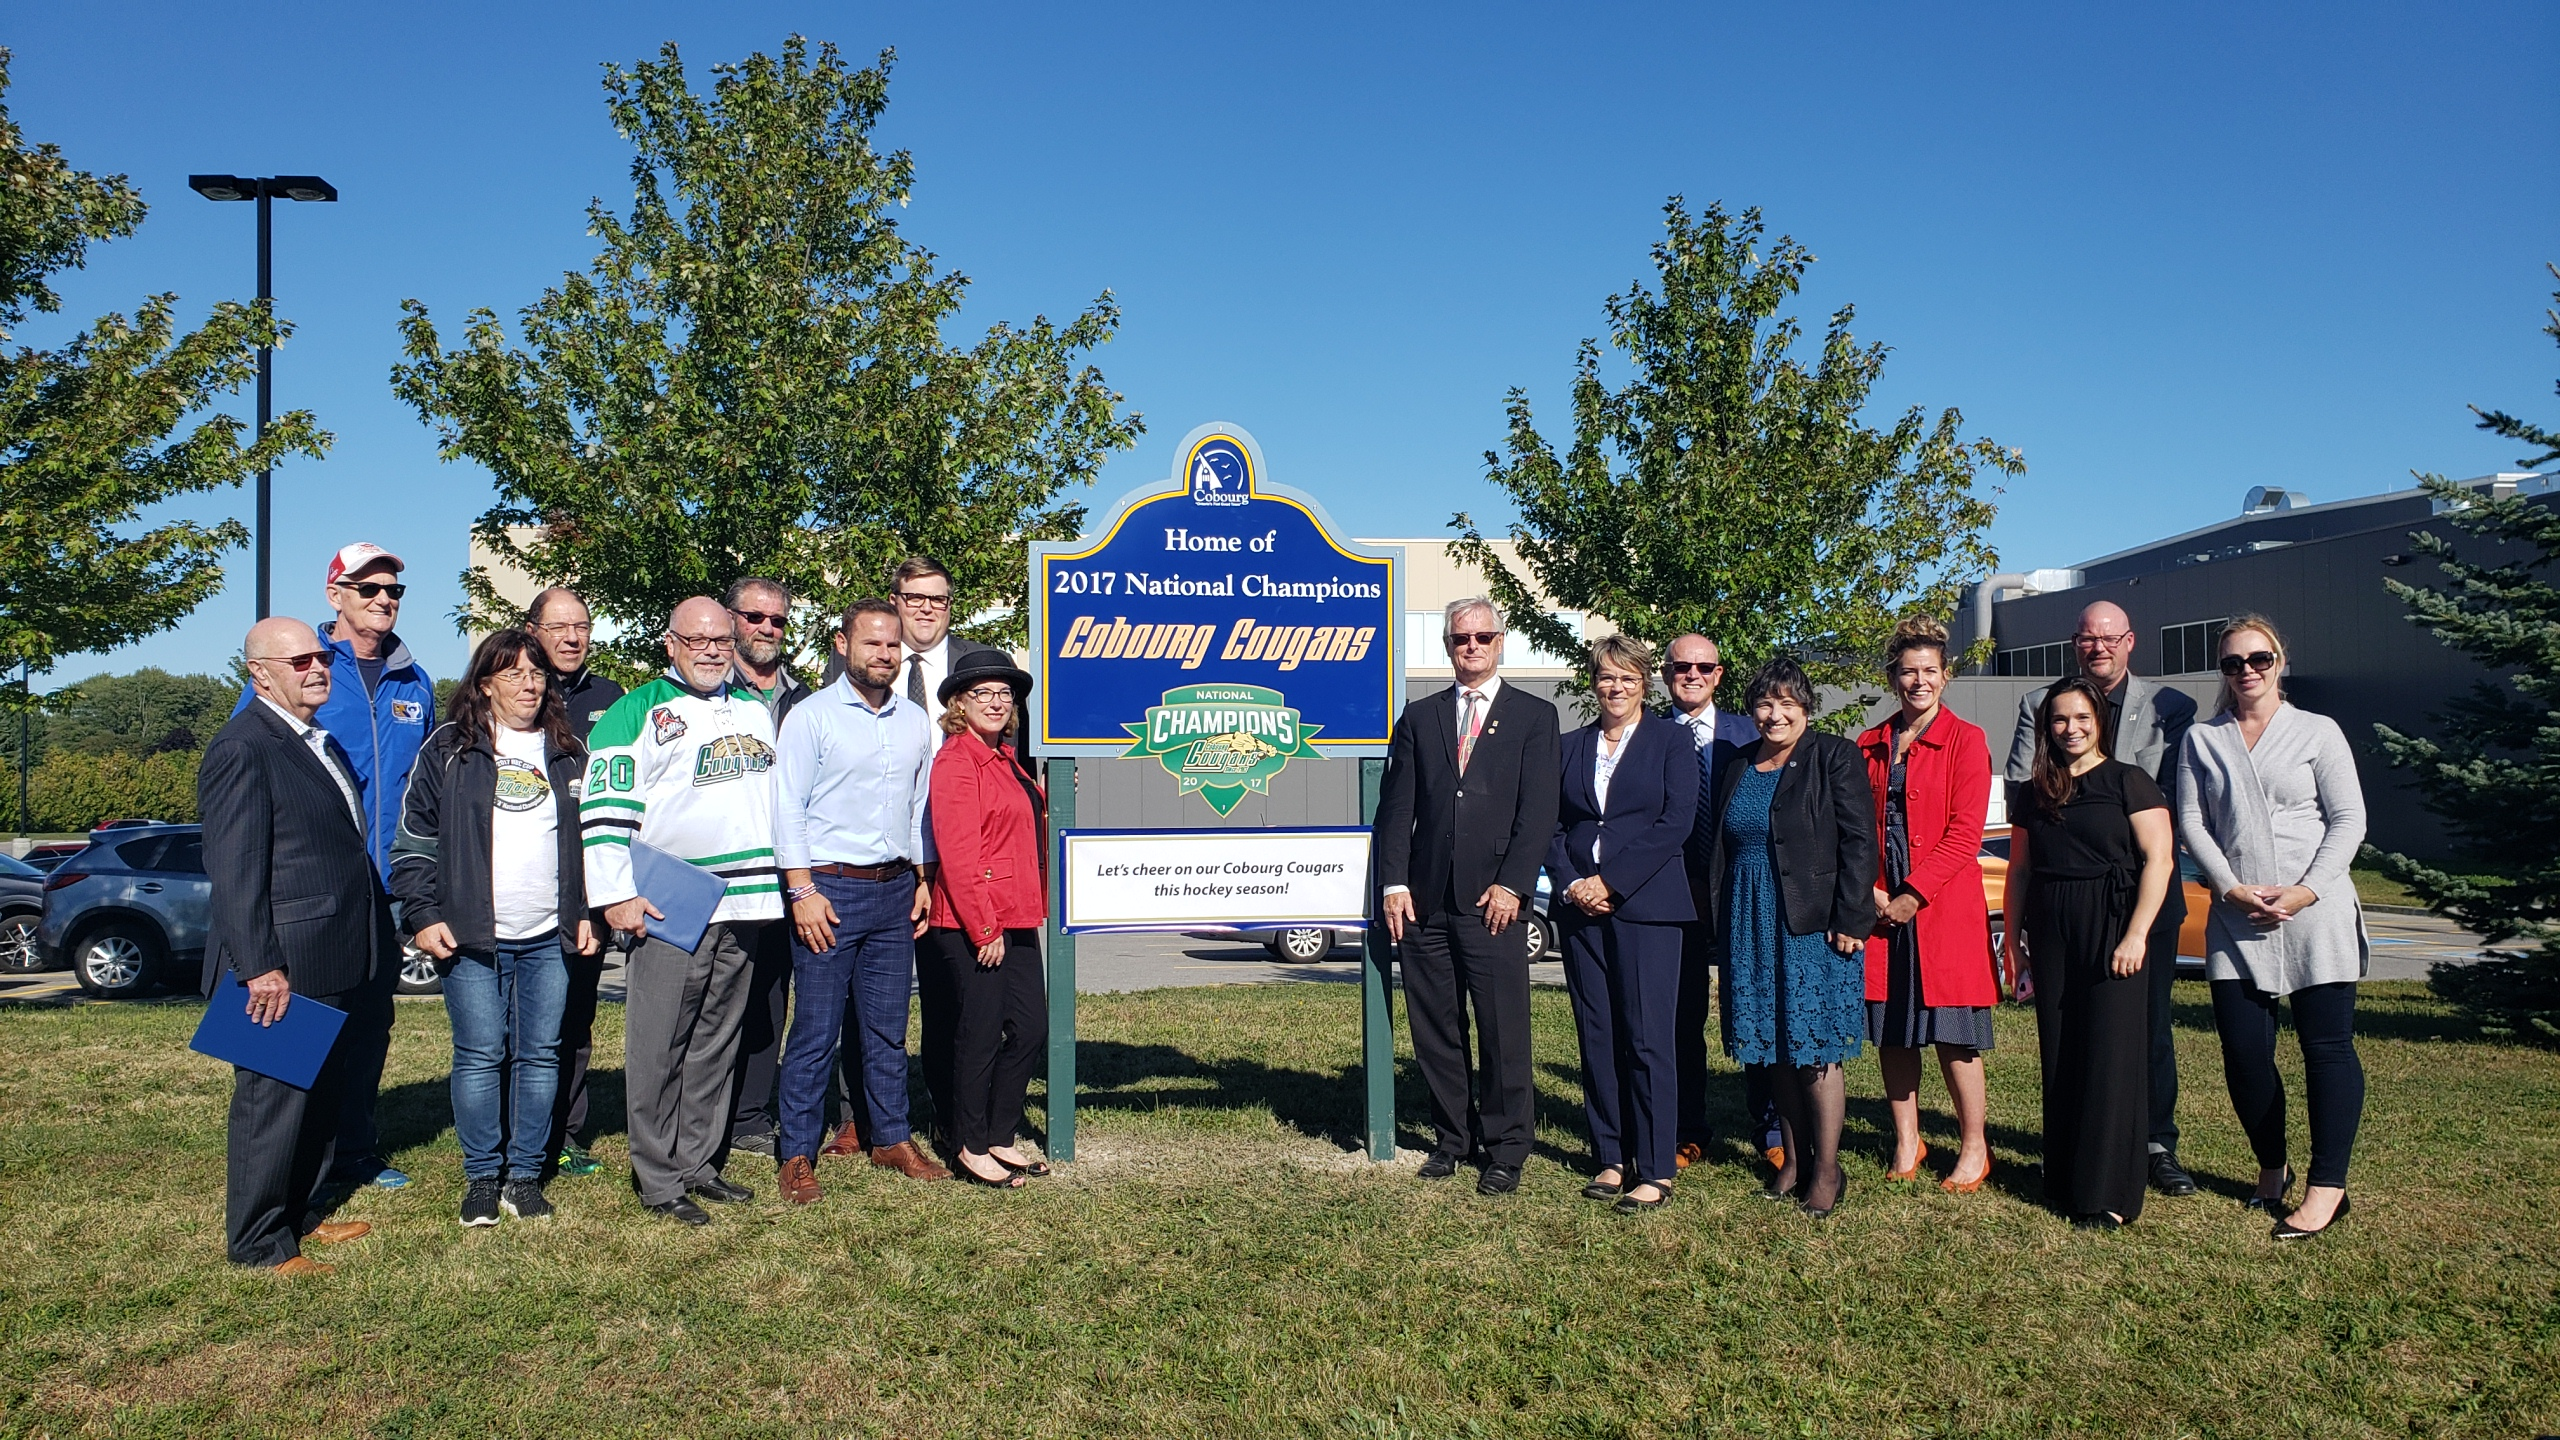 Cobourg Cougar Sign Unveiling_Group Photo